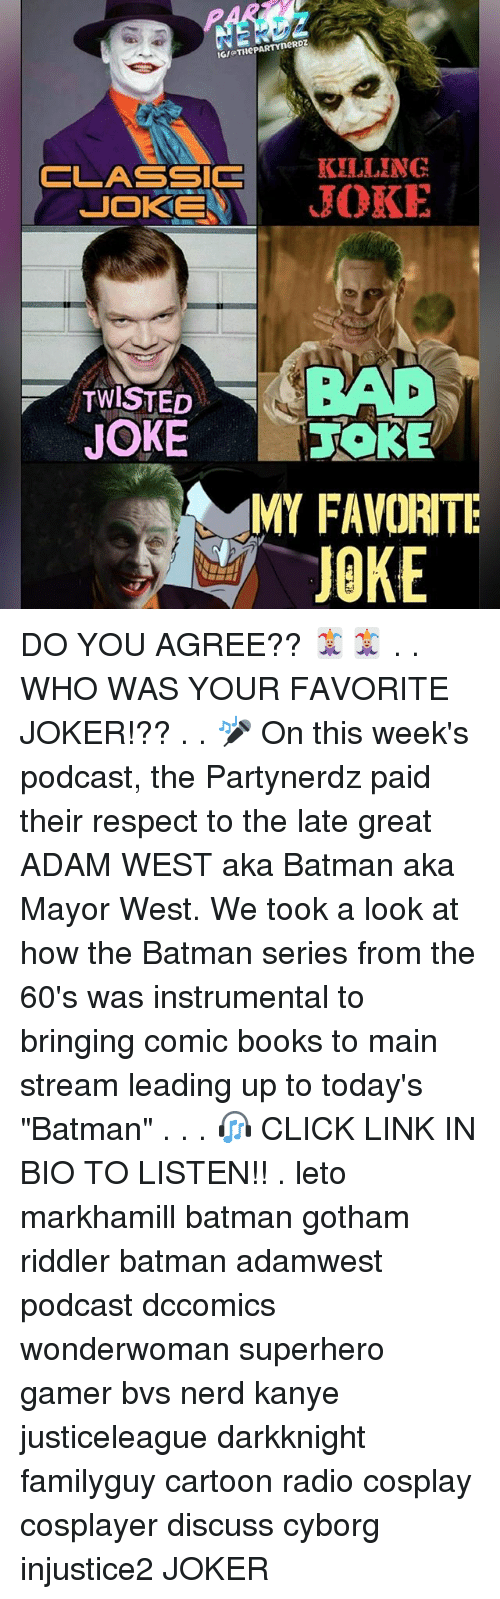 "killing joke: IGMOTHePARTYneRDZ  CLASSIC  KILLING  JOKE  JOKES  TWISTED  JOKE  MY FAVORITE  JOKE DO YOU AGREE?? 🃏🃏 . . WHO WAS YOUR FAVORITE JOKER!?? . . 🎤 On this week's podcast, the Partynerdz paid their respect to the late great ADAM WEST aka Batman aka Mayor West. We took a look at how the Batman series from the 60's was instrumental to bringing comic books to main stream leading up to today's ""Batman"" . . . 🎧 CLICK LINK IN BIO TO LISTEN!! . leto markhamill batman gotham riddler batman adamwest podcast dccomics wonderwoman superhero gamer bvs nerd kanye justiceleague darkknight familyguy cartoon radio cosplay cosplayer discuss cyborg injustice2 JOKER"